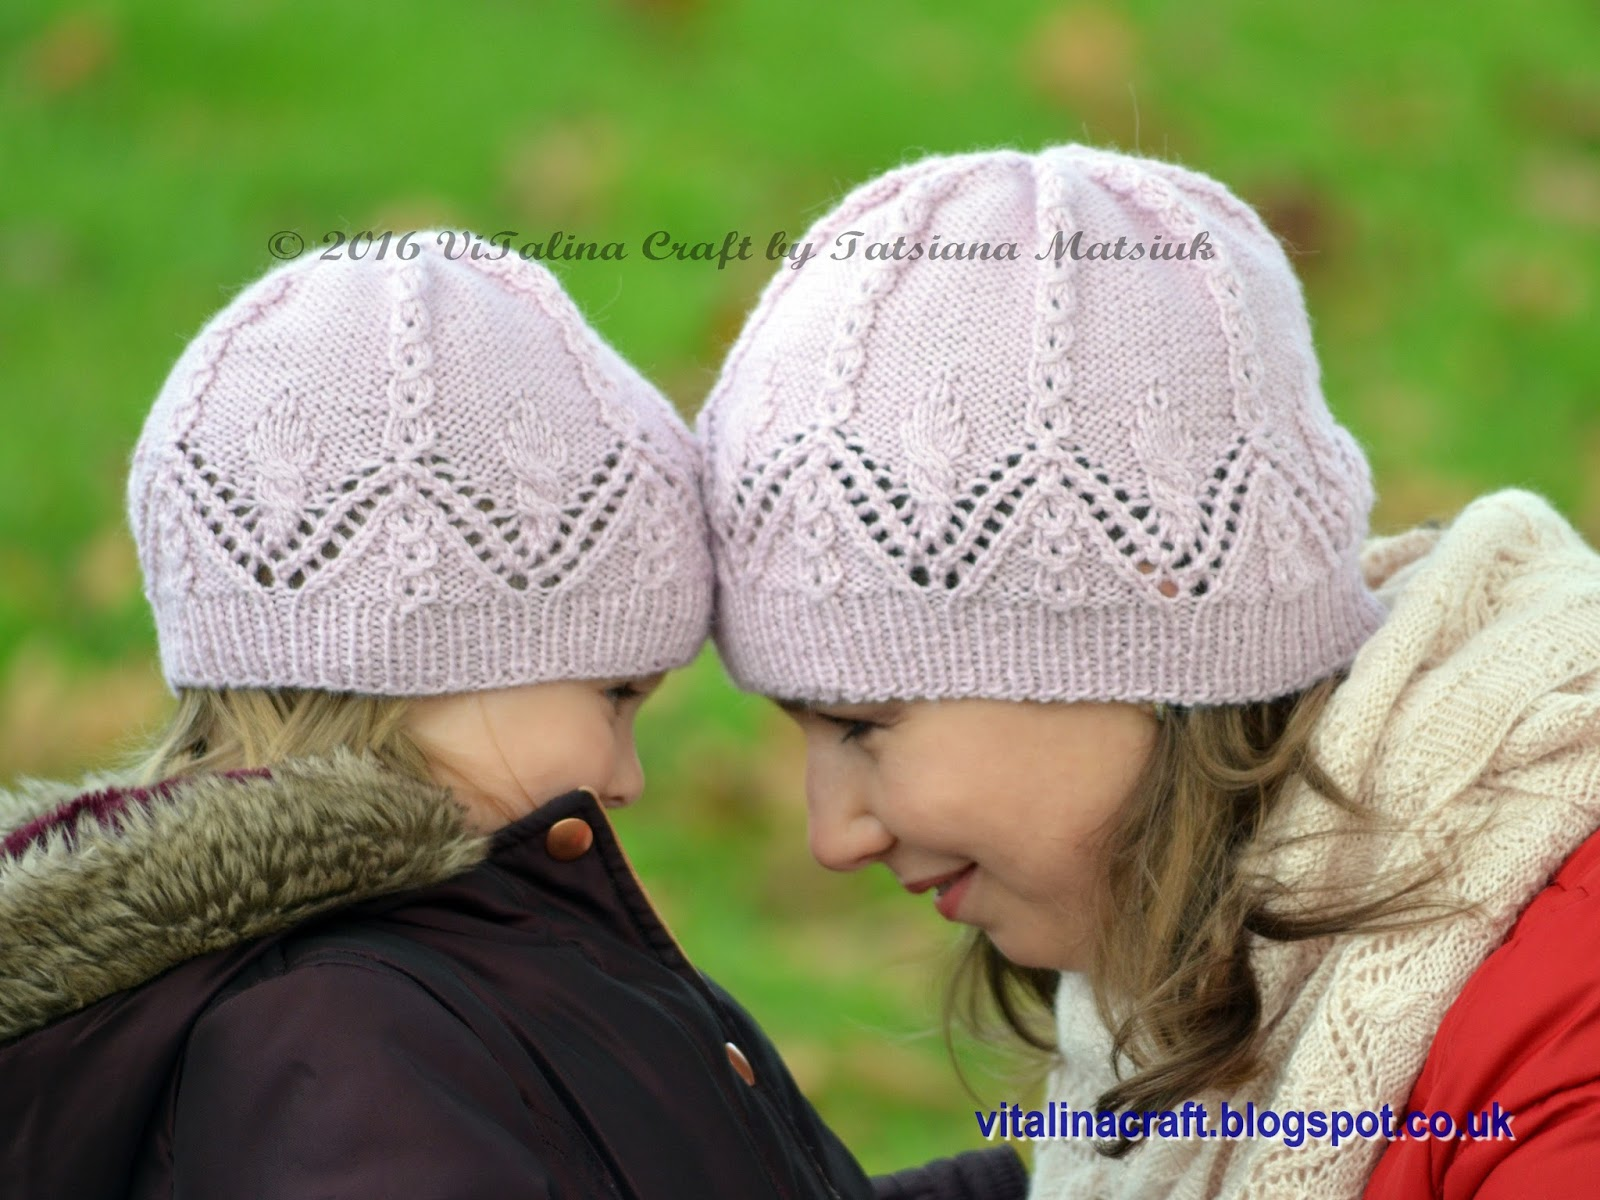 Lace Knitting Patterns In The Round : Lace Charm Hat and Cowl Set ViTalina Craft